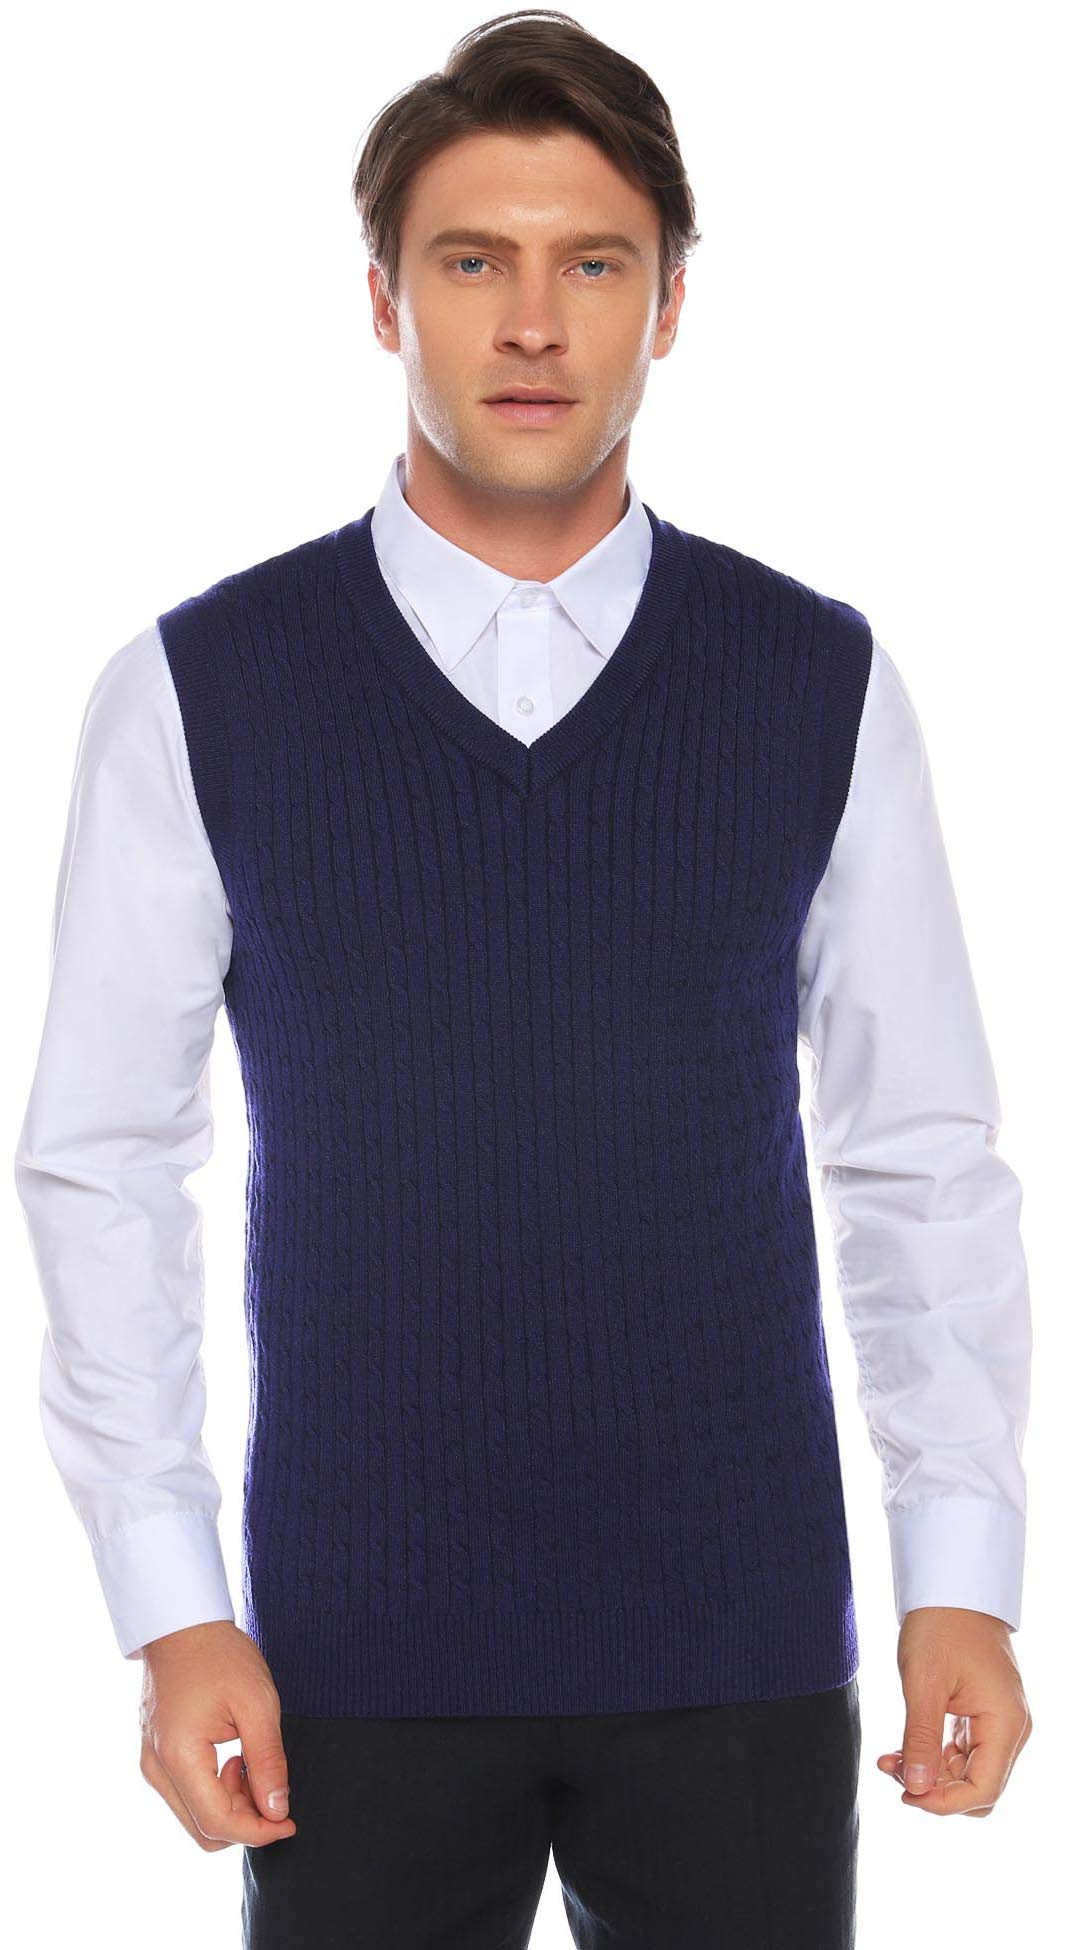 Aibrou Men's V Neck Sweater Vest Twist Cable Sleeveless Knitted Pullover (XL,Dark Blue) by Aibrou